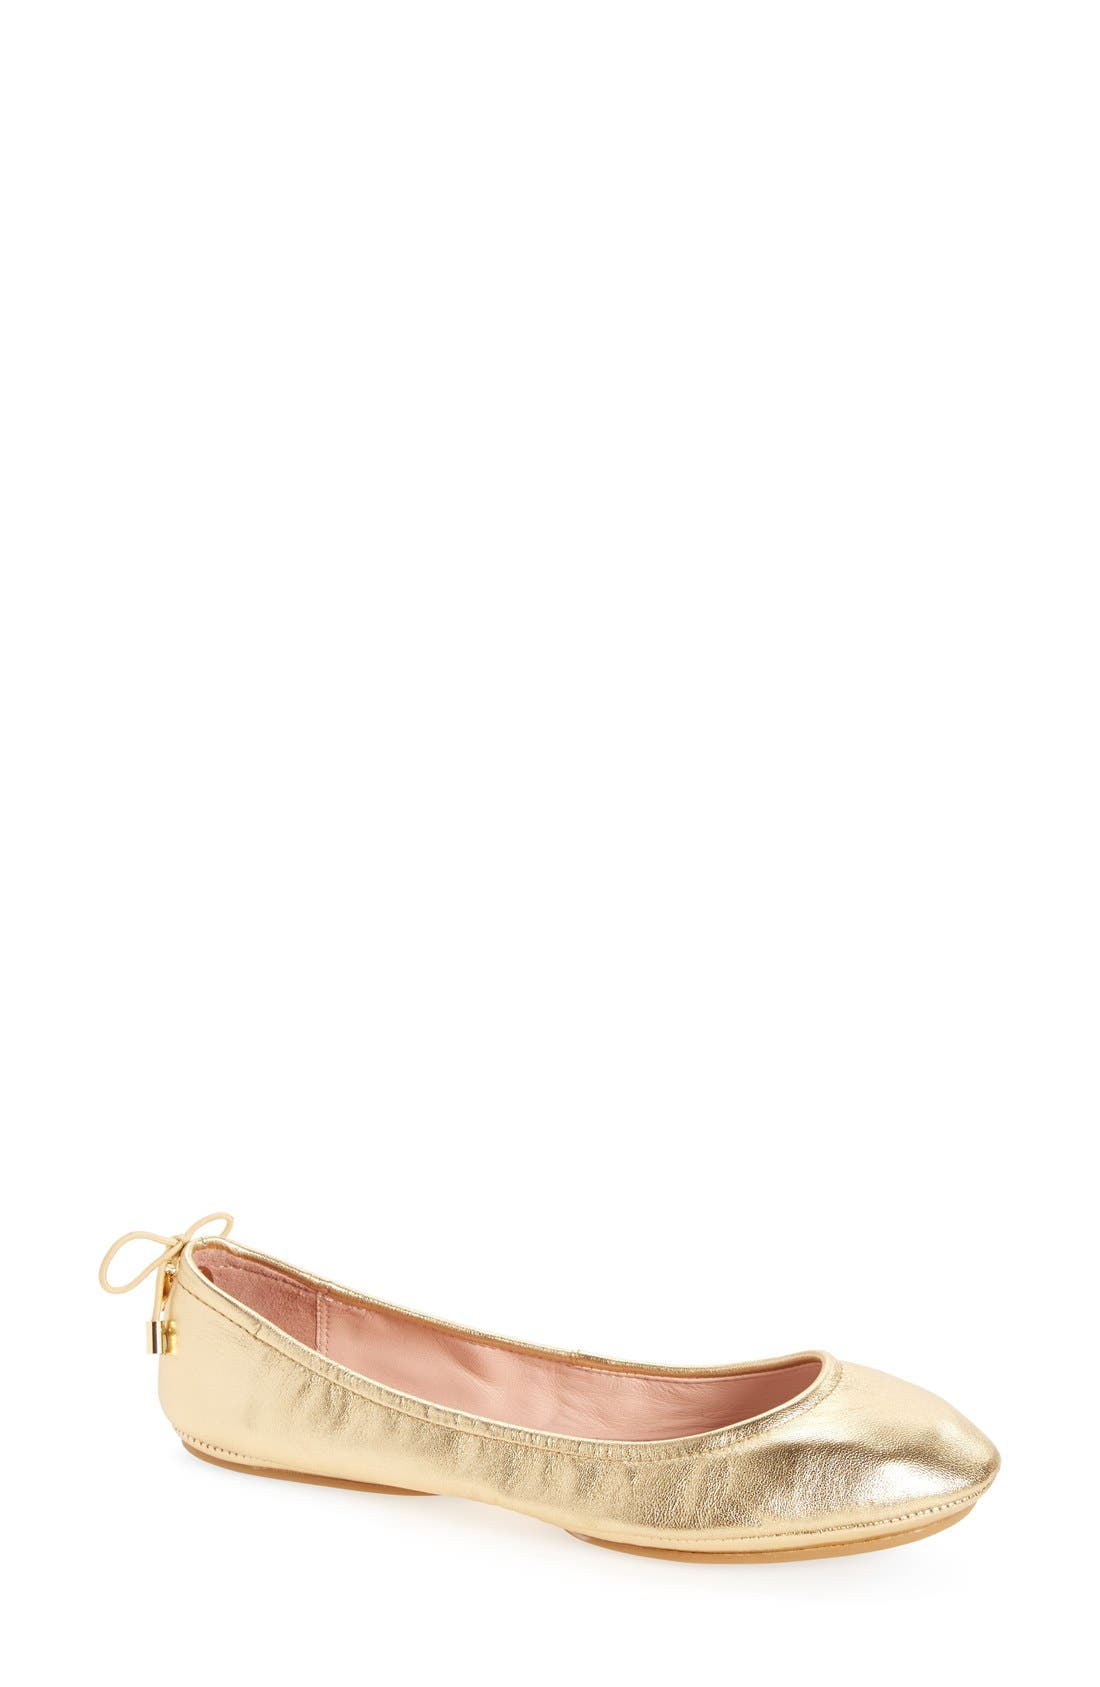 Main Image - kate spade new york globe foldable ballet flat (Women)